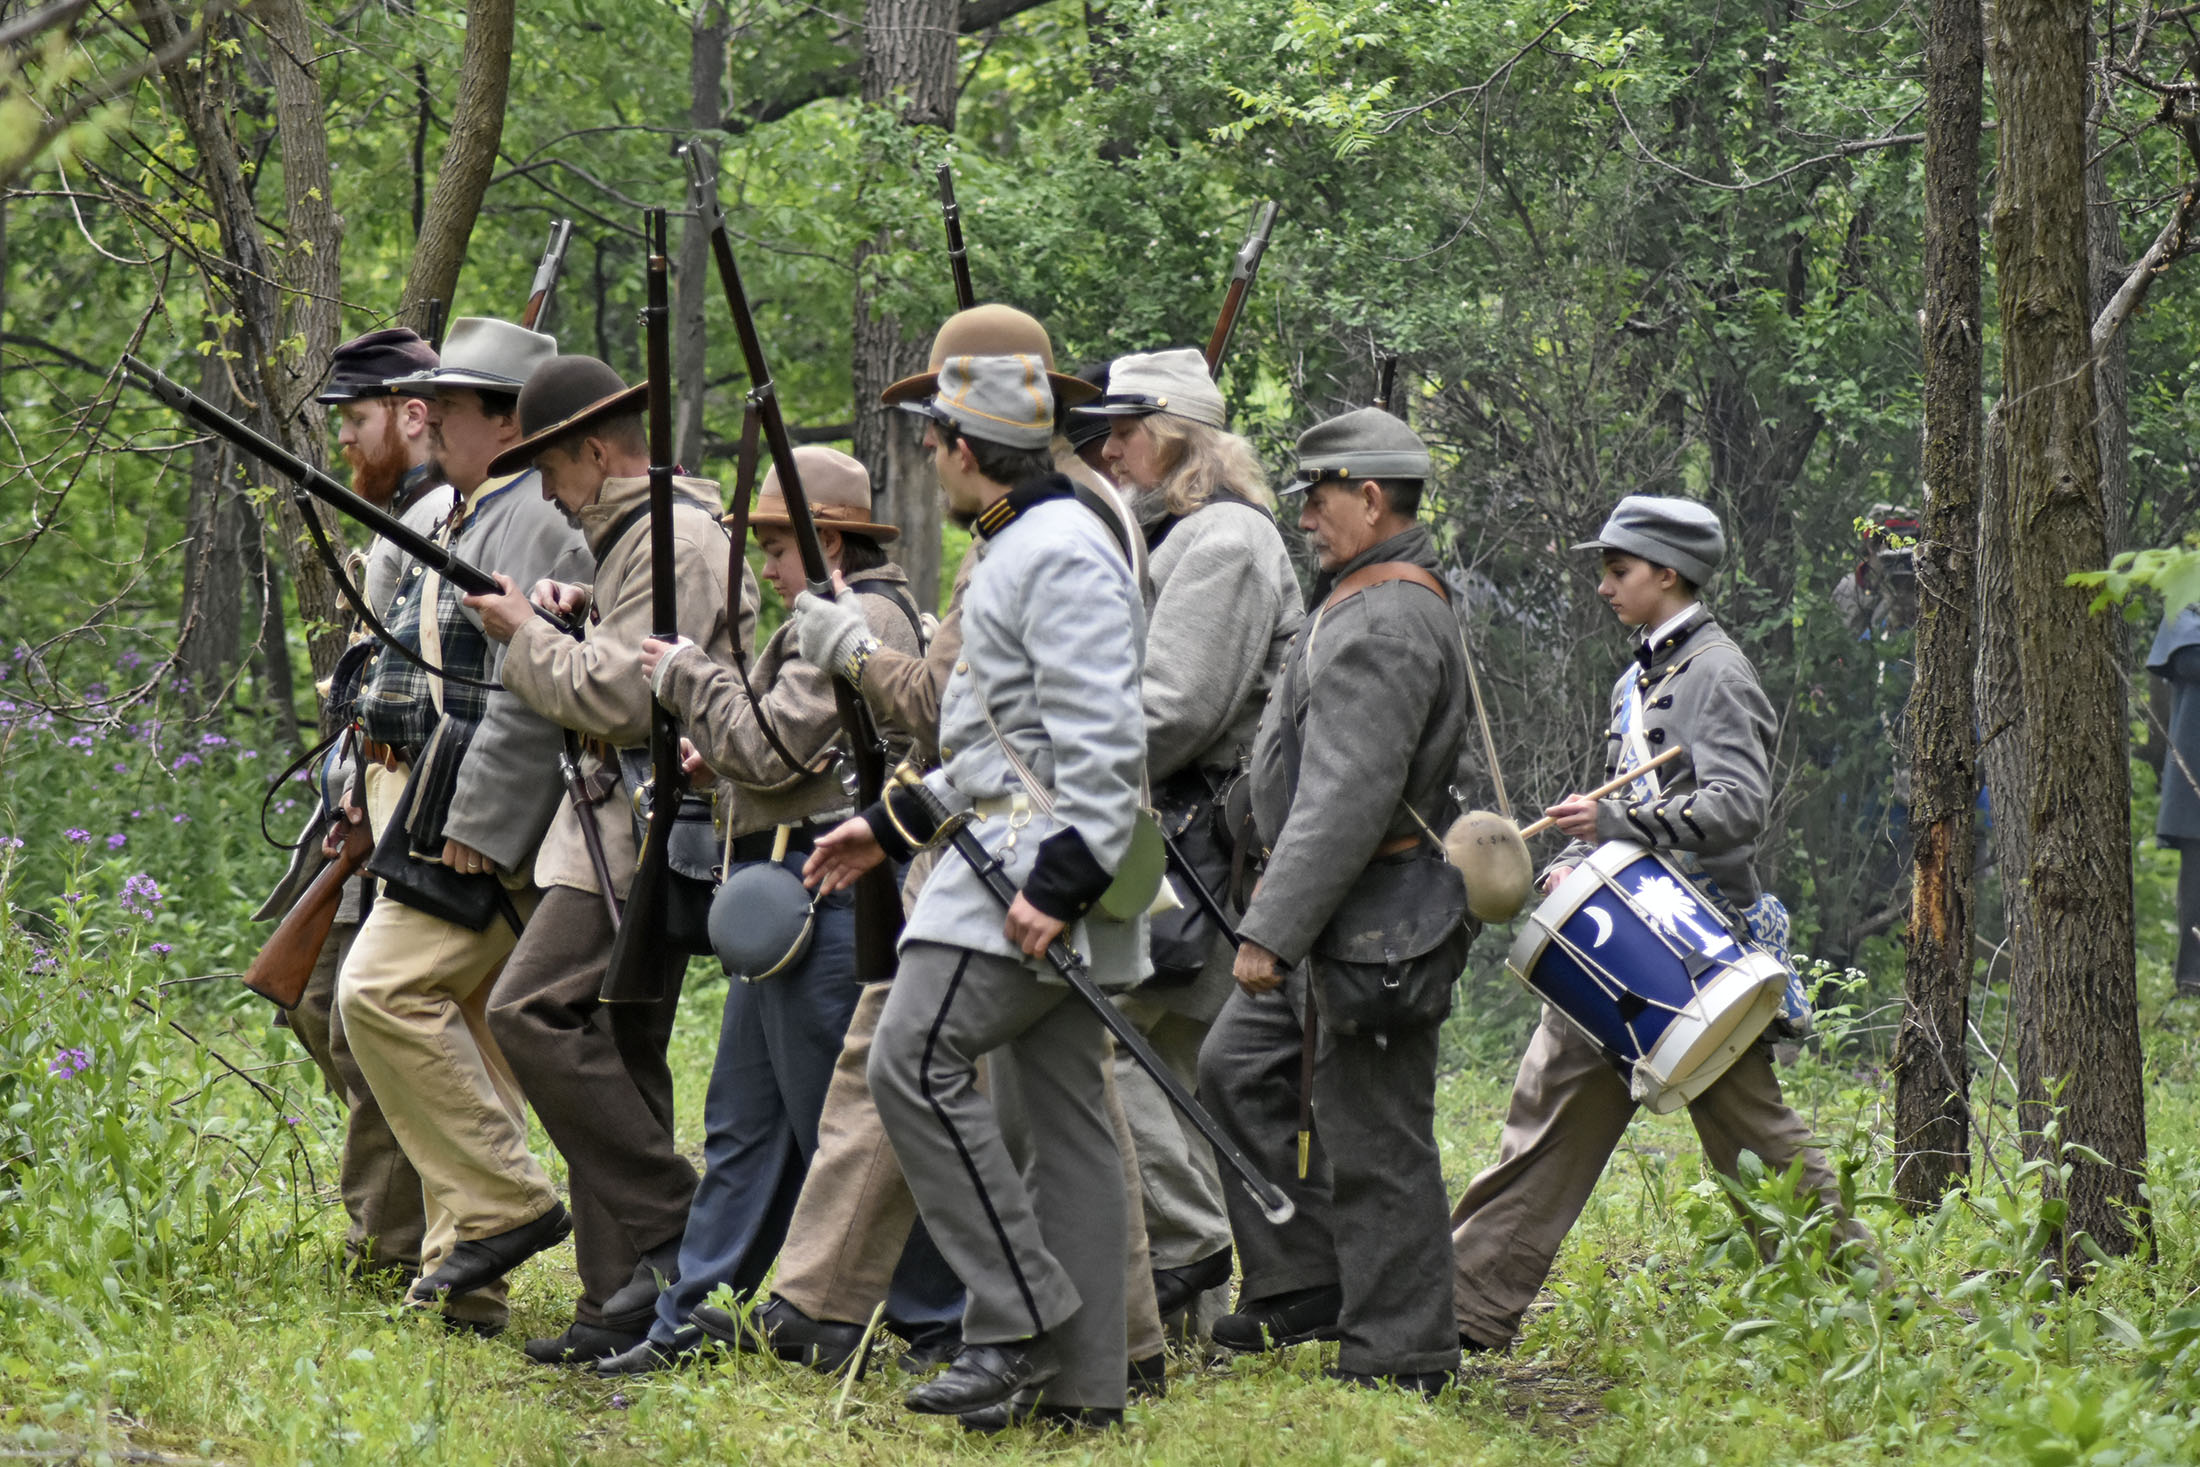 Rain doesn't dampen the spirit of the Civil War Re-enactors